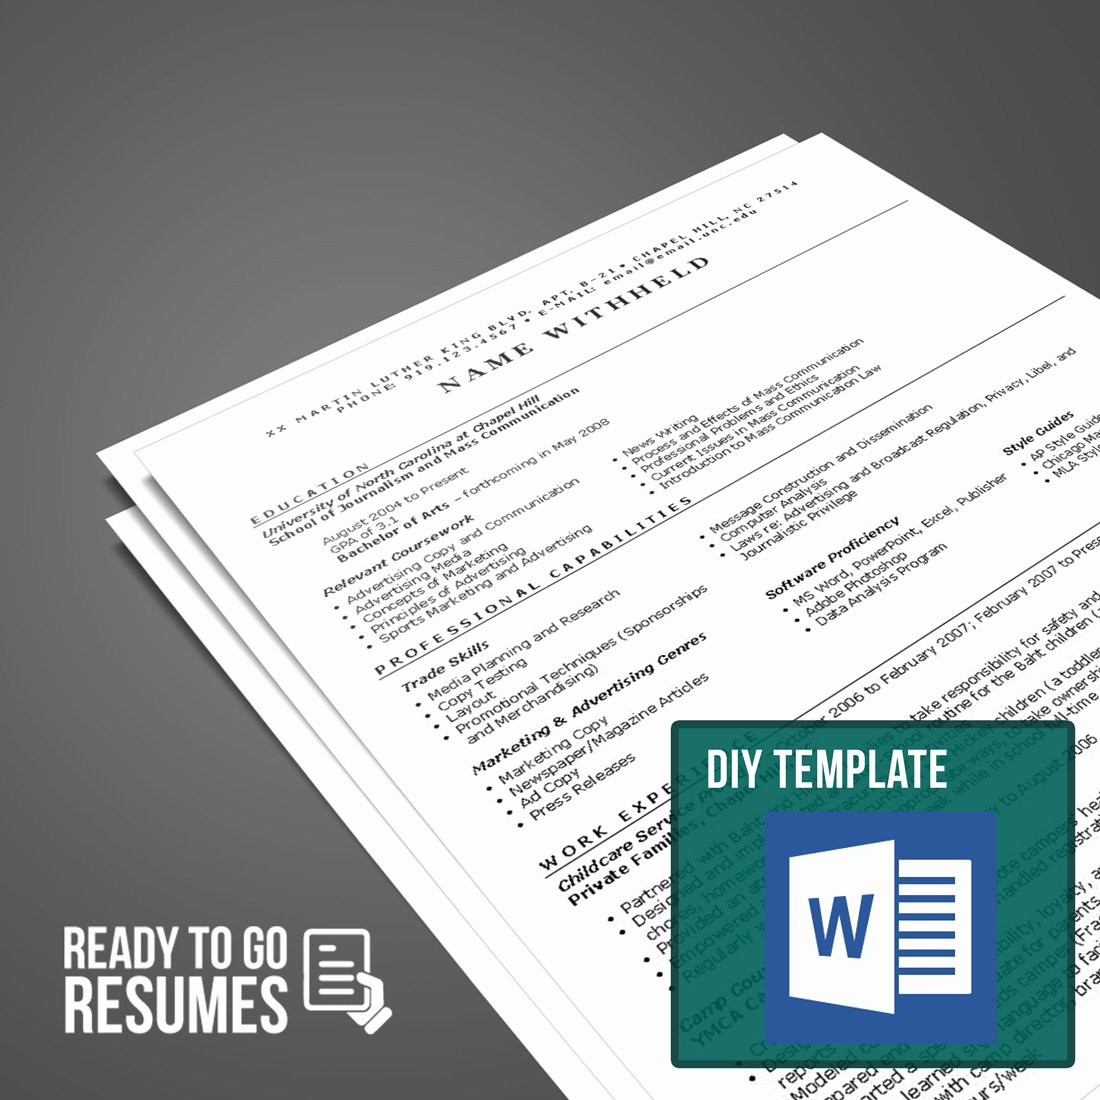 Lockheed Martin Address for Cover Letter Awesome order Your Resume